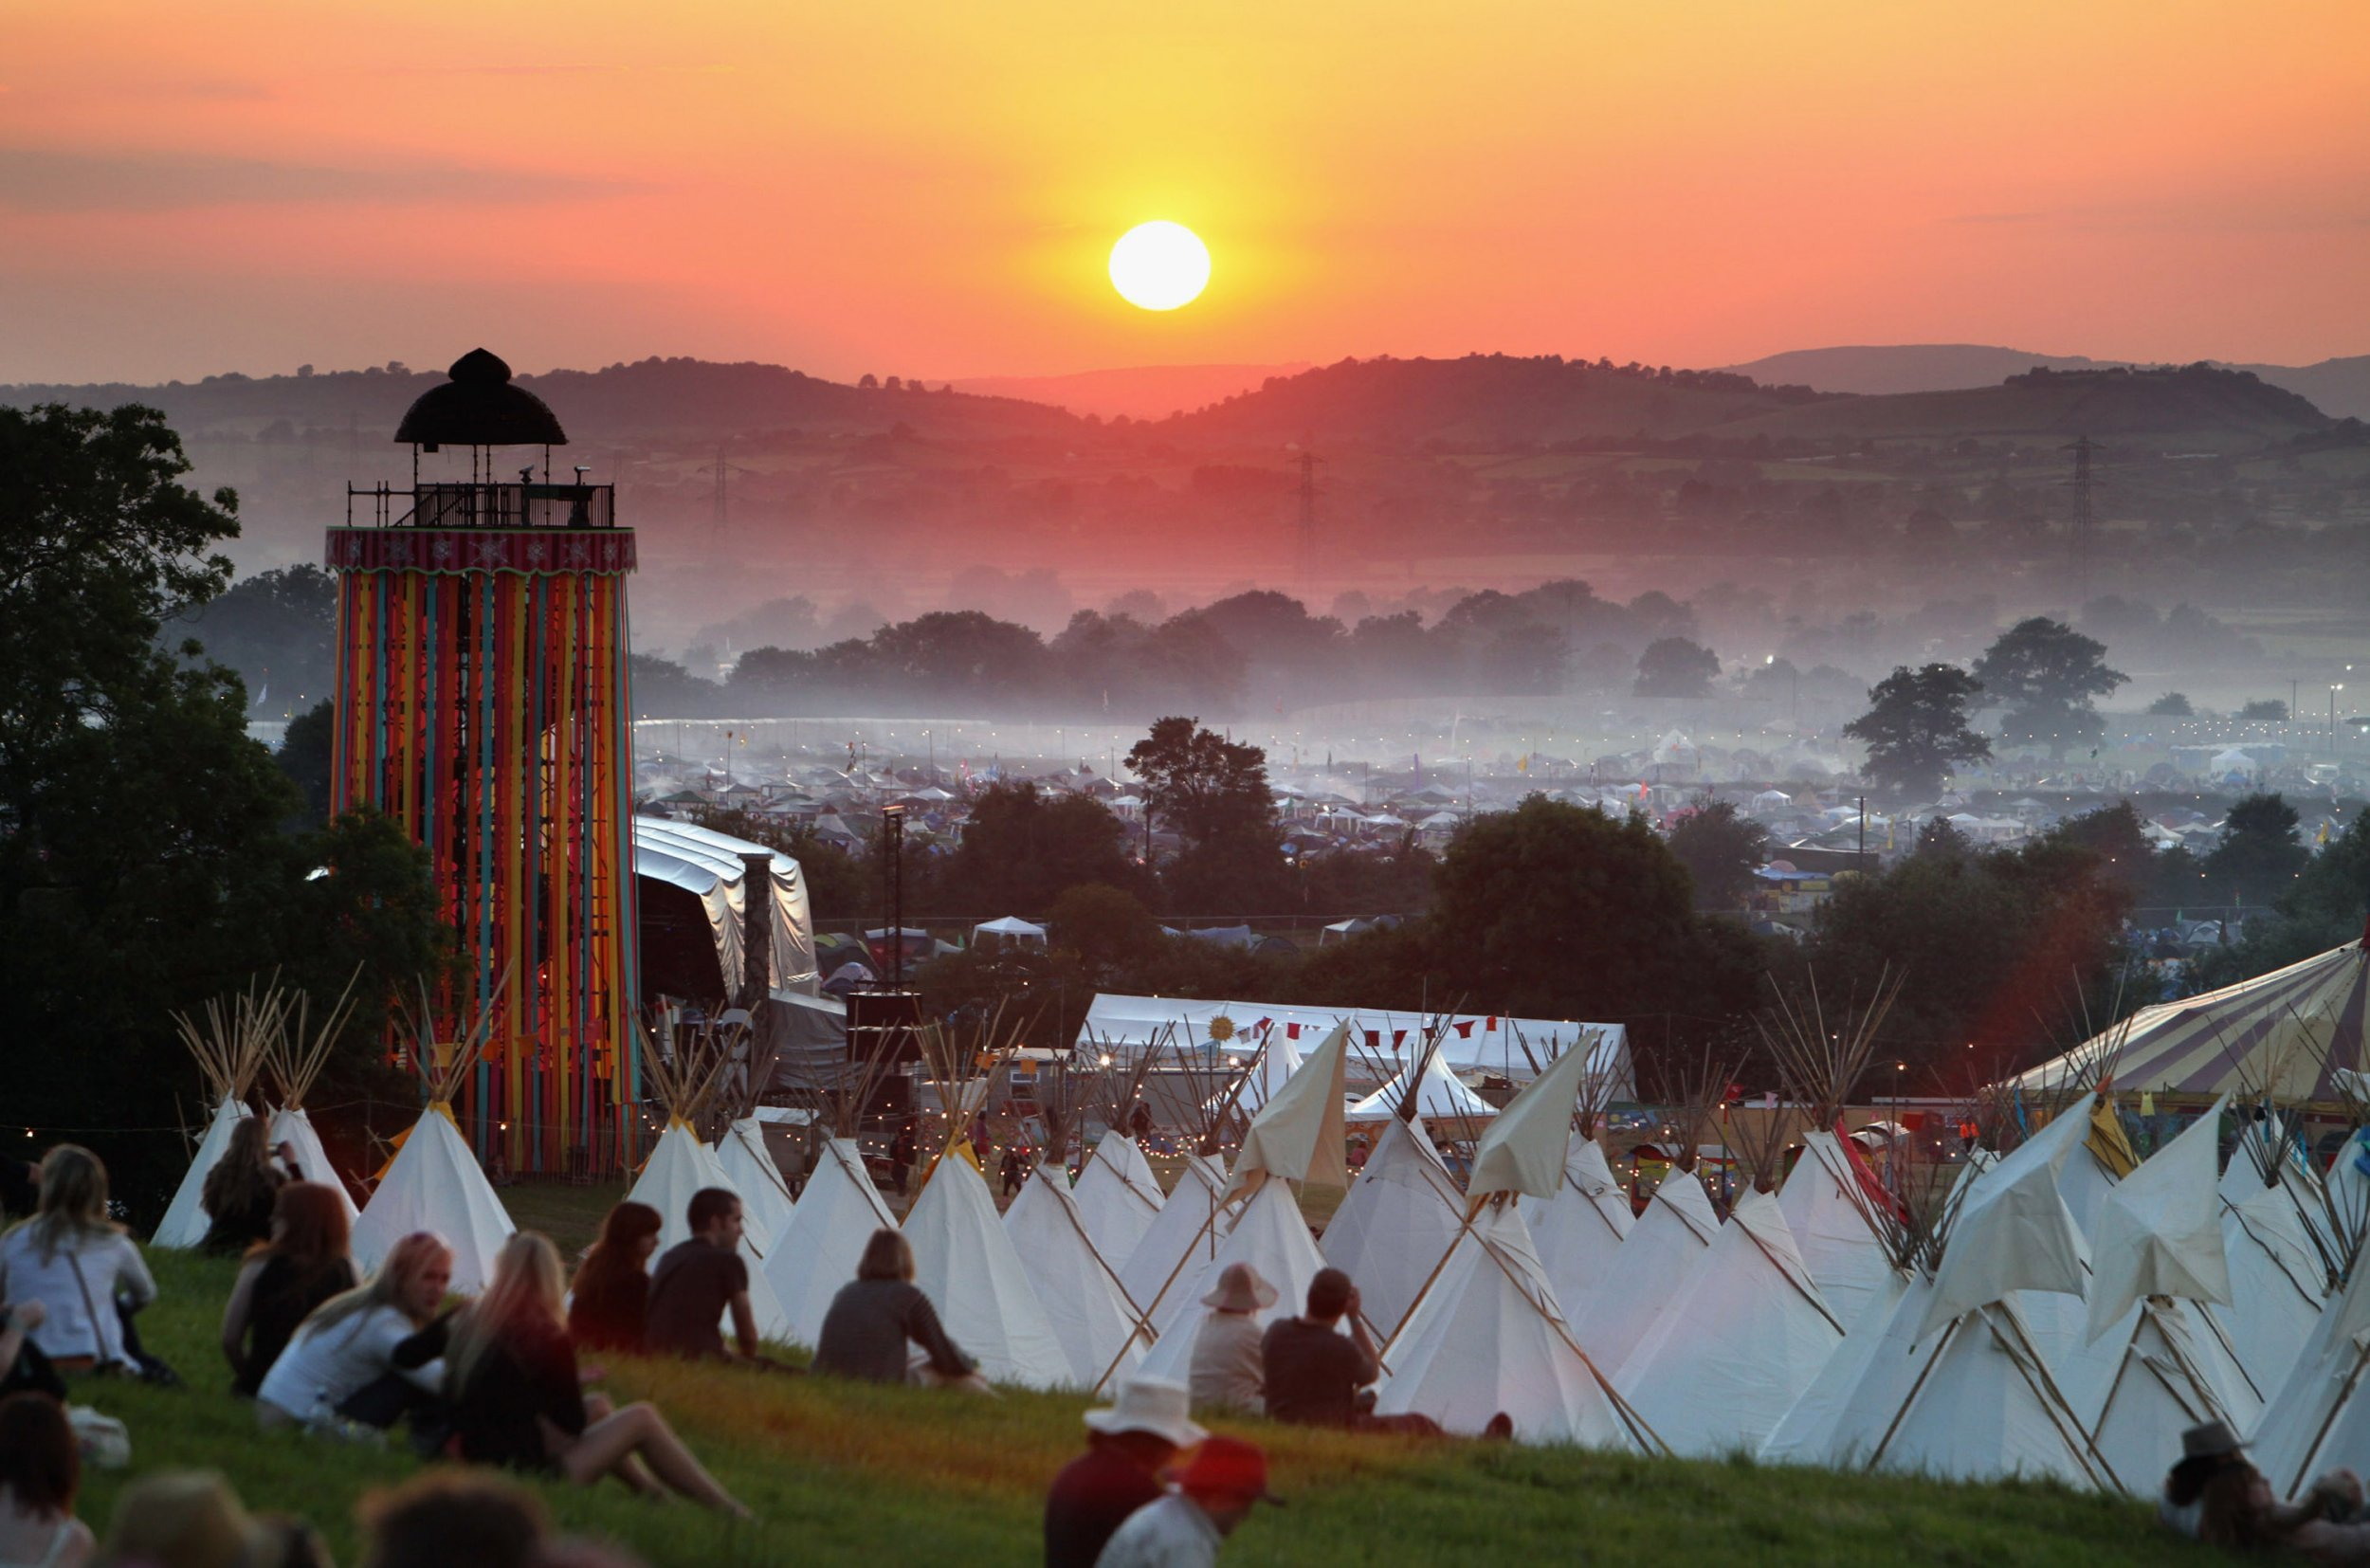 GLASTONBURY, UNITED KINGDOM - JUNE 24: People gather to watch the sunset on a hill above the tipi field as music fans start to arrive at the Glastonbury Festival site at Worthy Farm, Pilton on June 24, 2009 in Glastonbury, Somerset, England. The gates have opened for the first of the 140000 music fans arriving, at what has become one of Europe's largest music festivals, but weather forecasters have warned that bad weather may be on the way. (Photo by Matt Cardy/Getty Images)